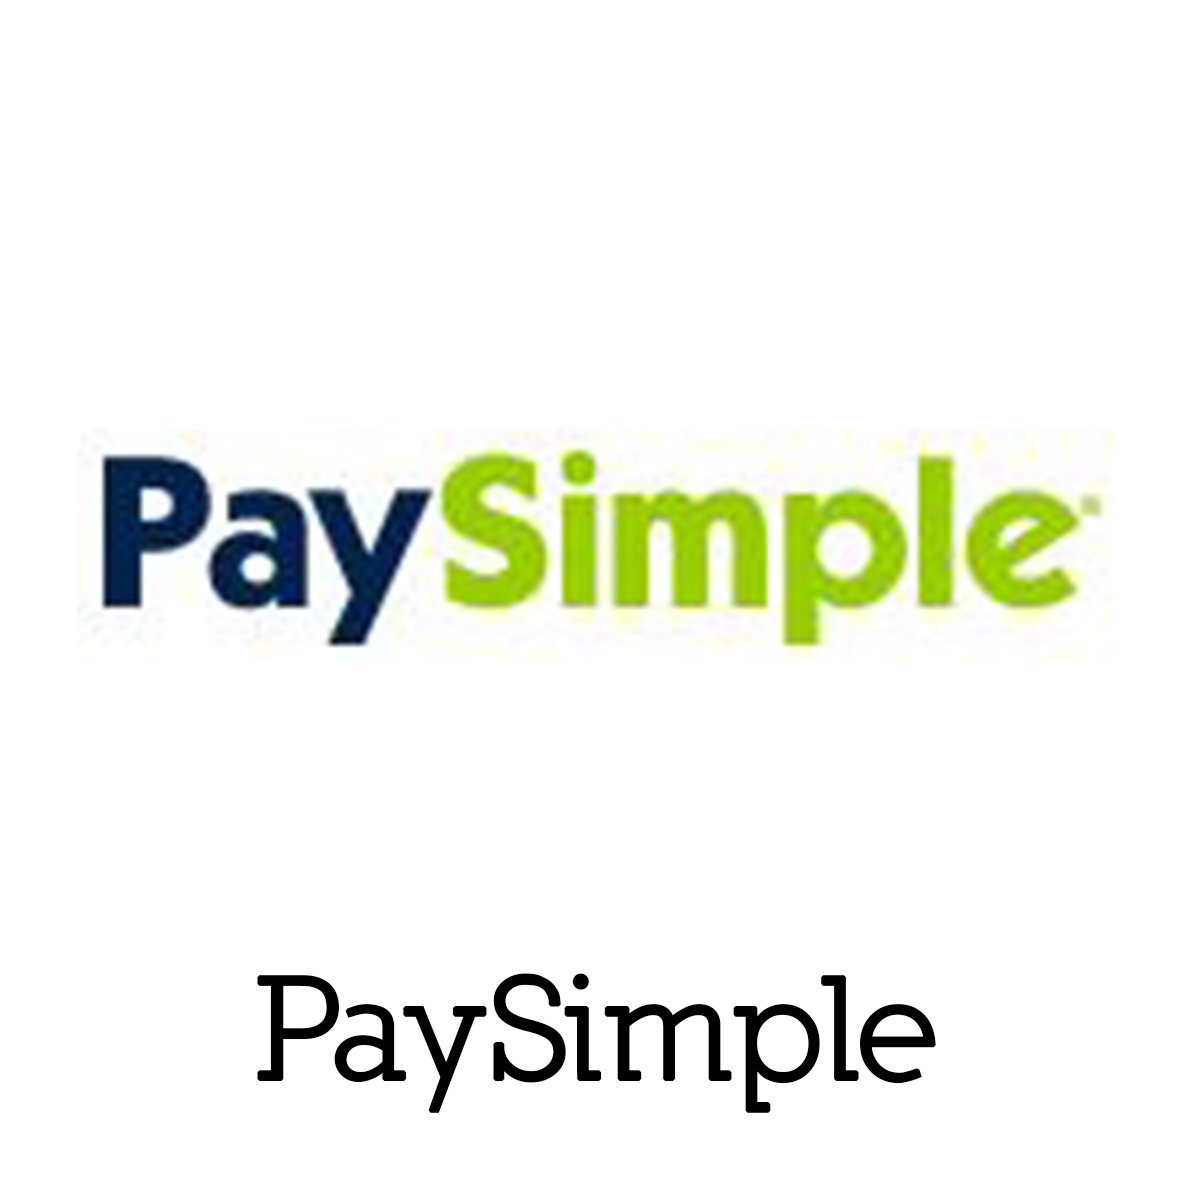 paysimple_resized-for-web.jpg